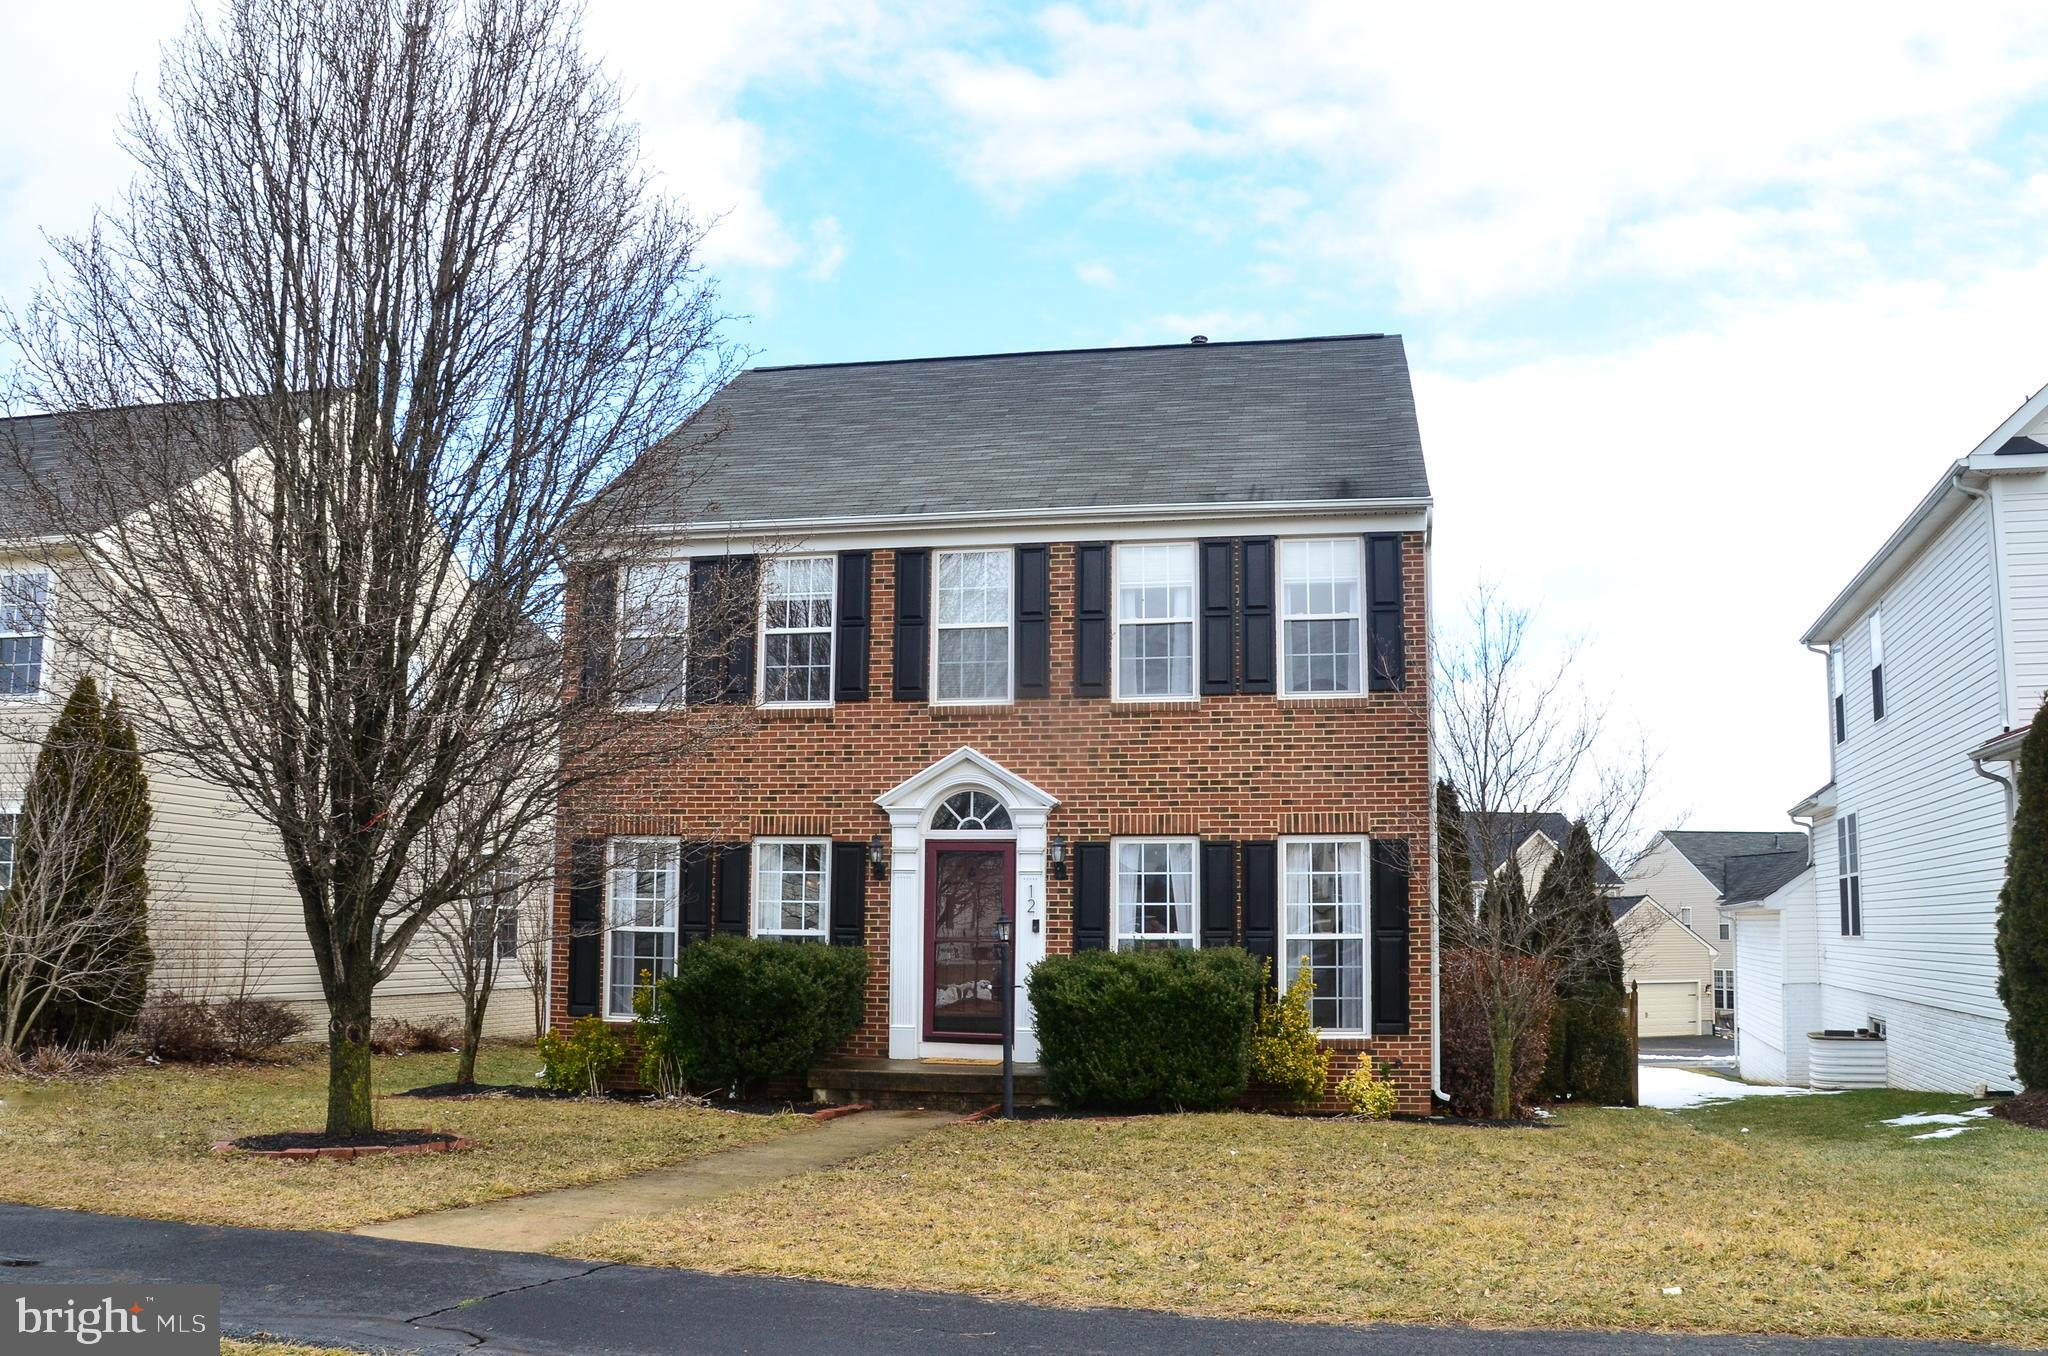 Welcome to this meticulously-maintained brick front Colonial in the quaint town of Lovettsville. Thi